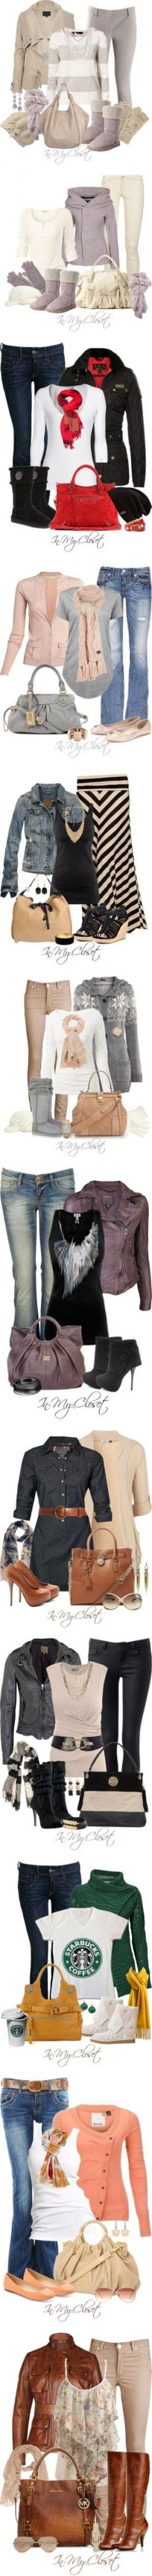 """""""winter"""" by shnnn-ellis ❤ liked on Polyvore: Ugg Boots, Fashion, Snow Boots, Outfit Ideas, Dream Closet, Cute Outfits, Winter Outfits, Fall Winter, I D Wear"""